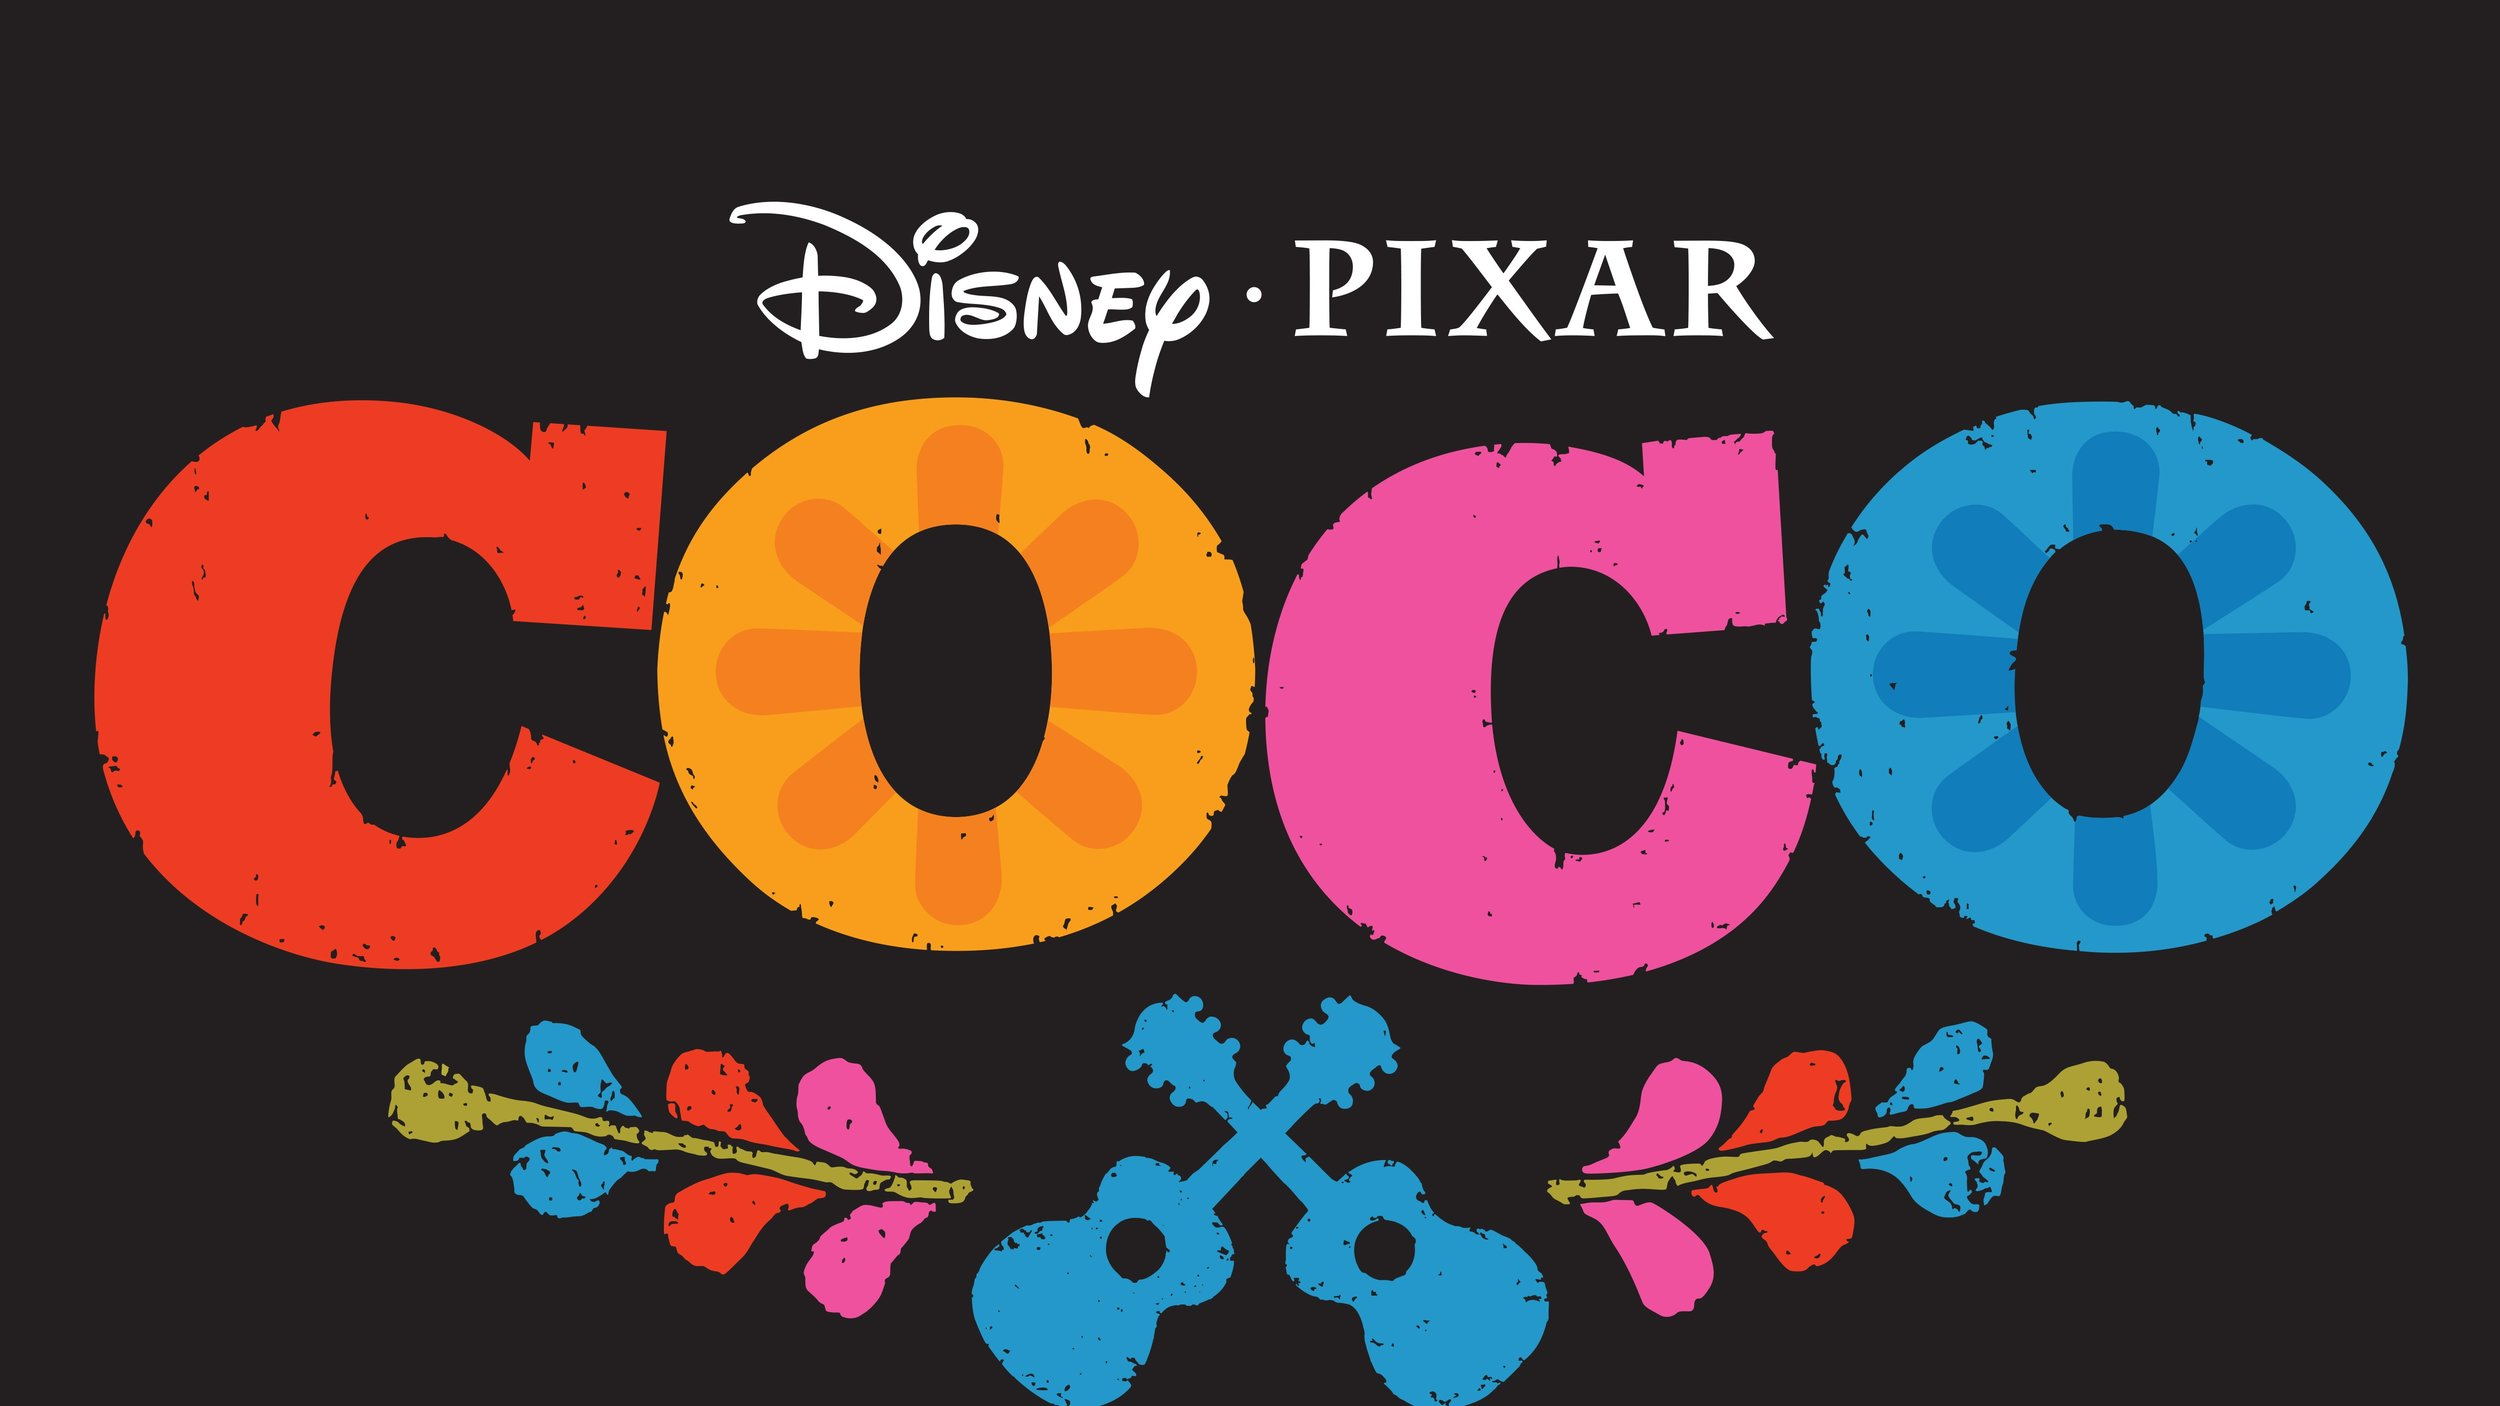 COCO LOGO-1B FINAL COLOR on BK 5-23-16.jpg